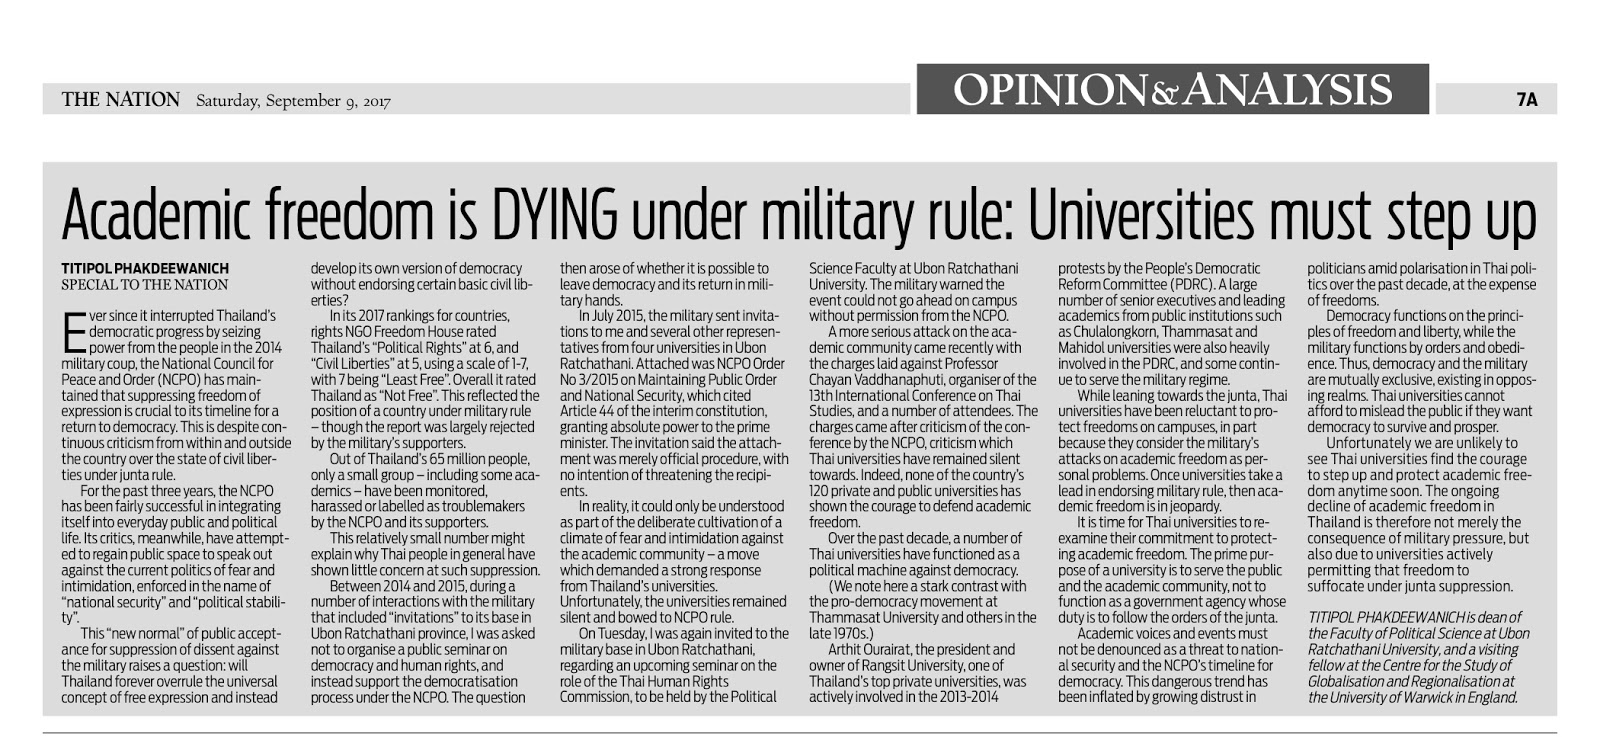 rules in the military essay Rules in the military essay by pierce_d35, university, master's, a, december 2009 dui's, weight control and failure to comply with rules and regulations.